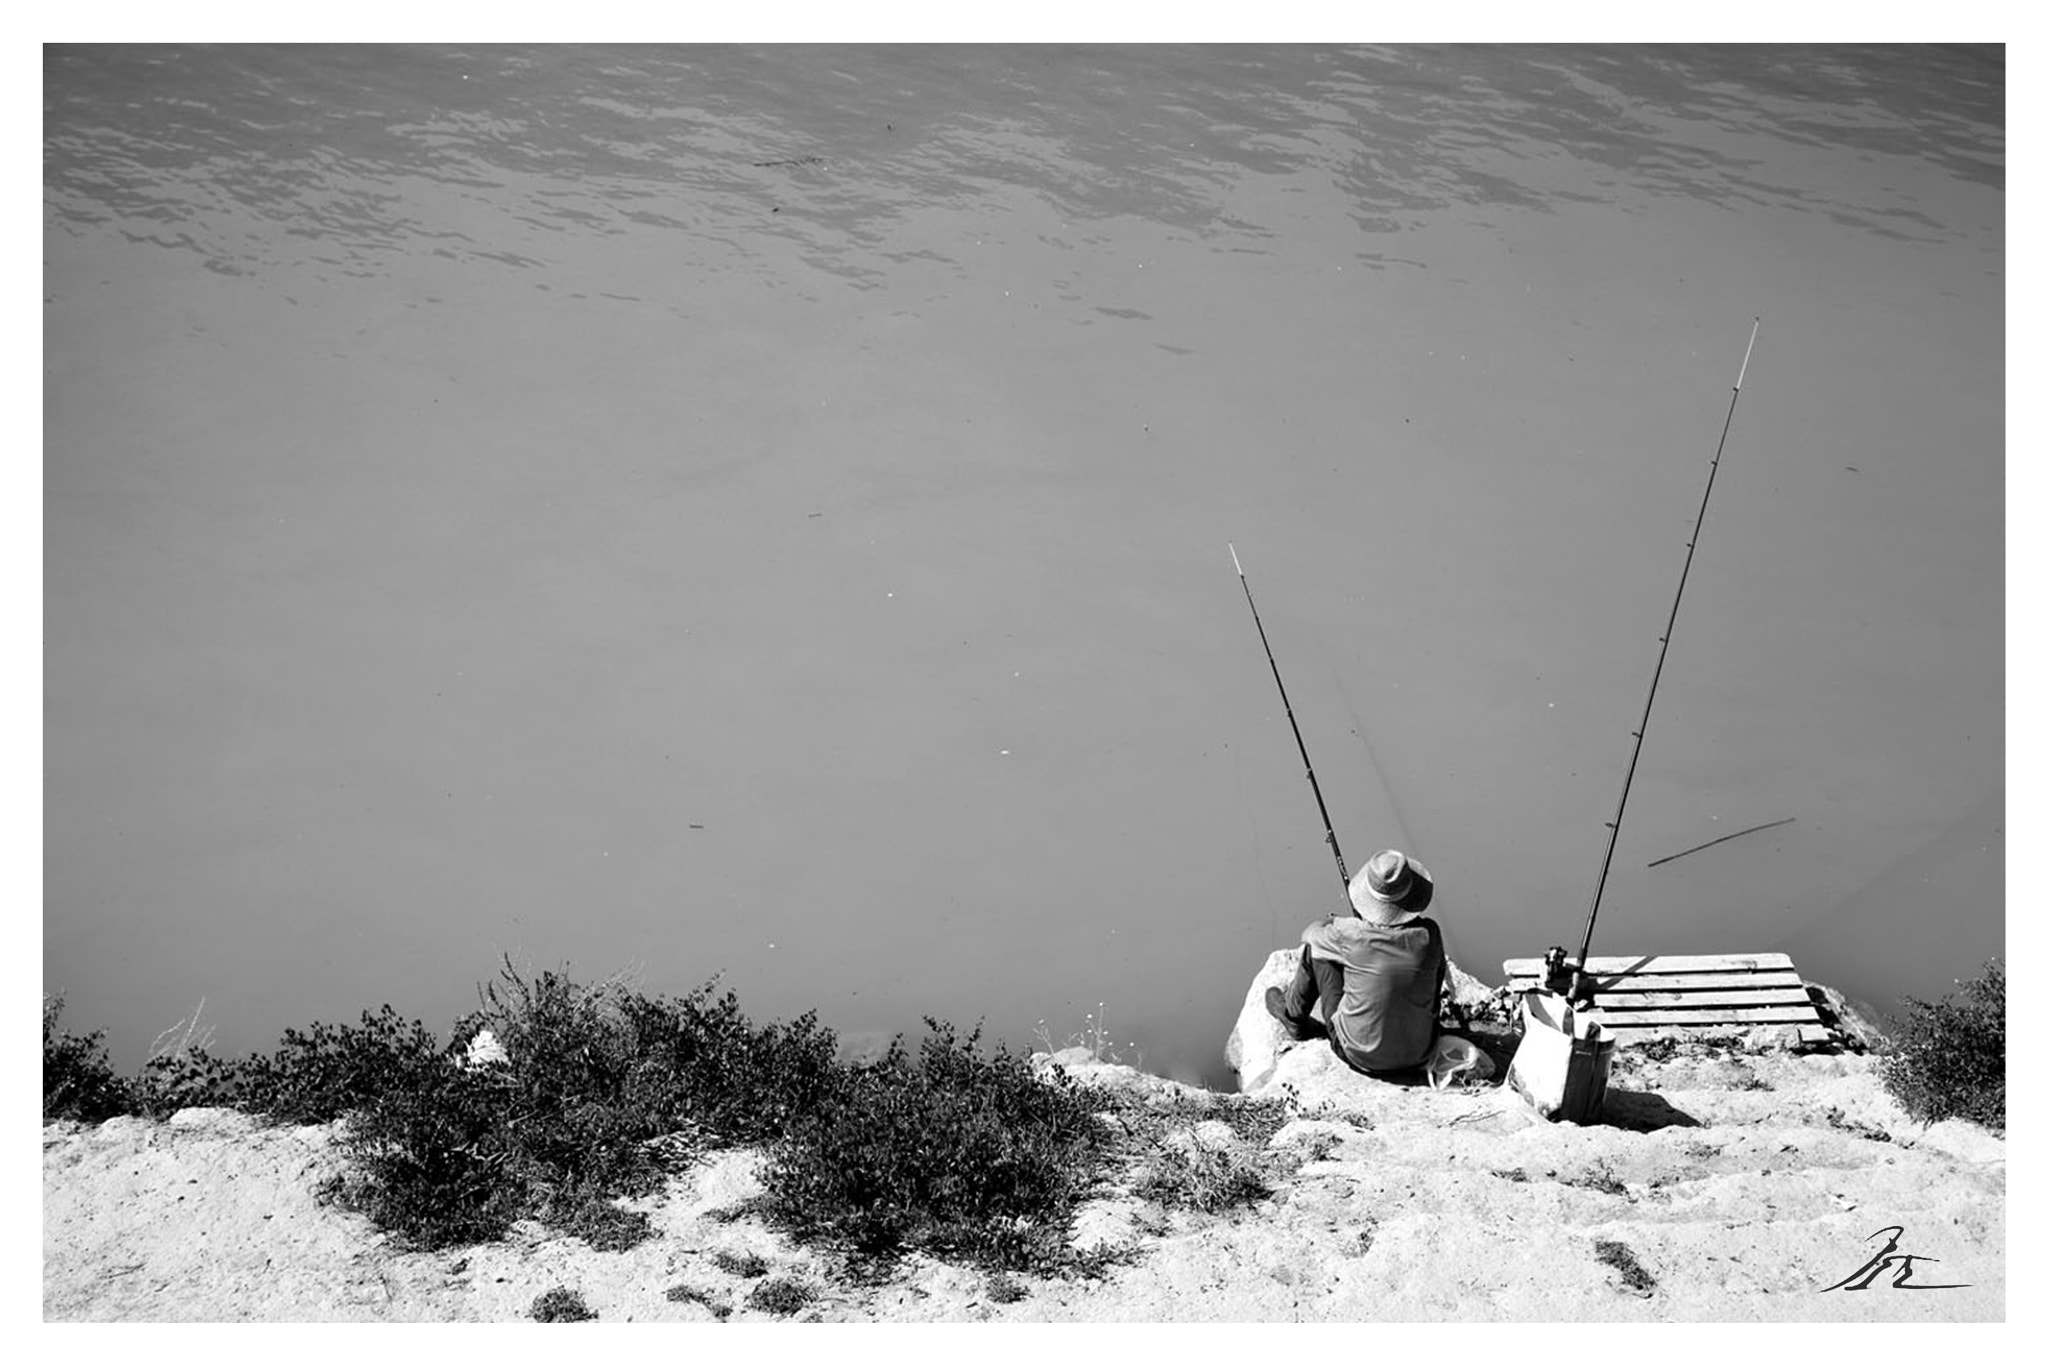 Photograph Monochrome fishing by Francisco Javier Martínez Medrano on 500px